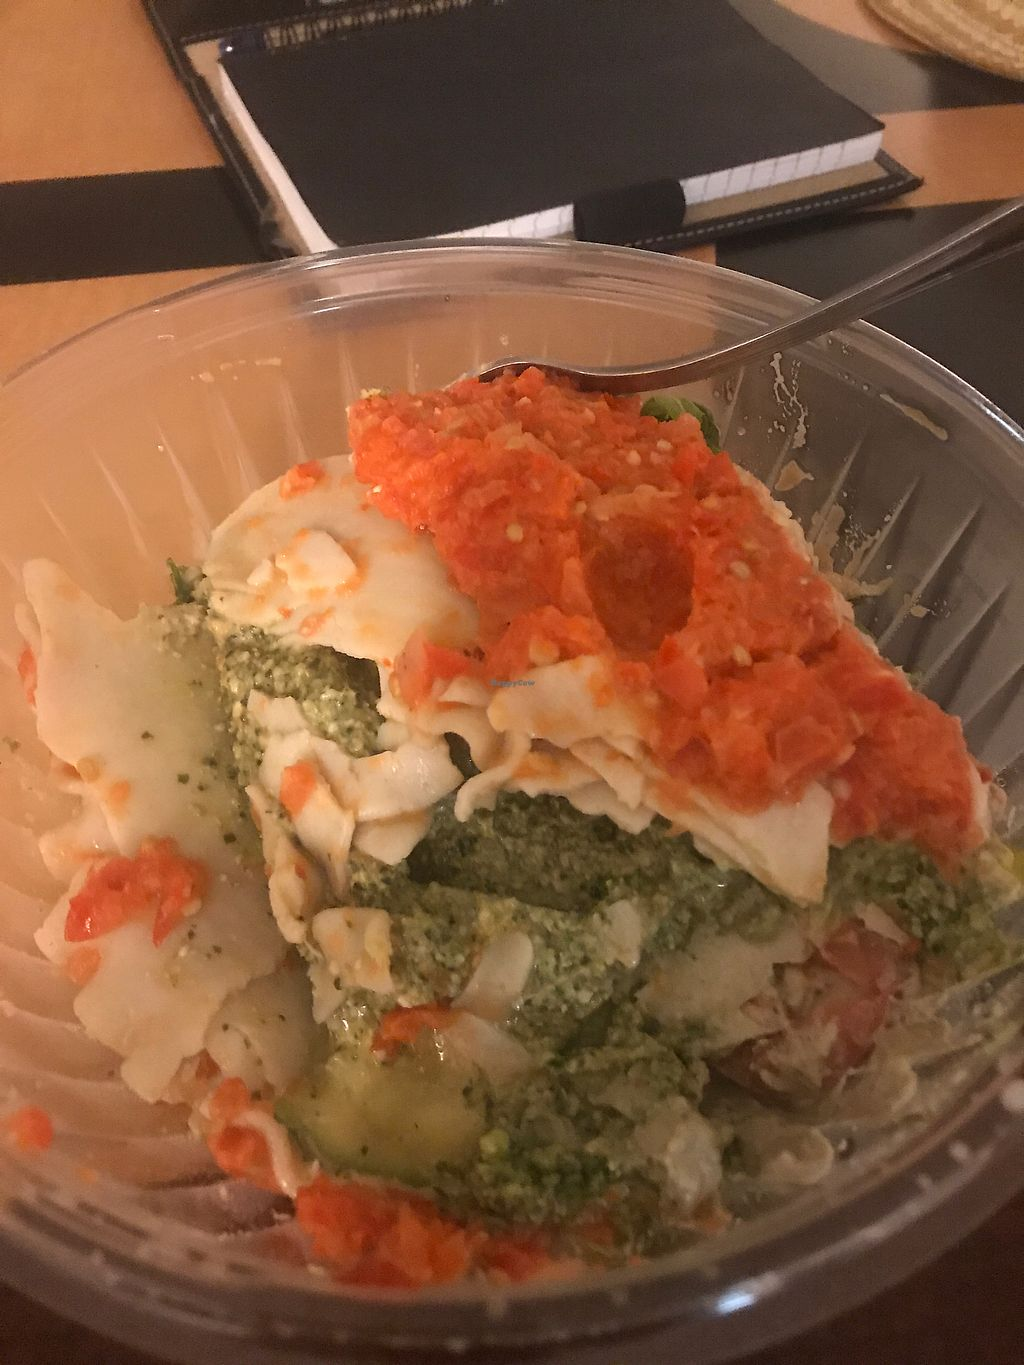 """Photo of The Sanibel Sprout  by <a href=""""/members/profile/RoBeanMartino"""">RoBeanMartino</a> <br/>Vegan raw lasagna  <br/> April 24, 2018  - <a href='/contact/abuse/image/37754/390340'>Report</a>"""